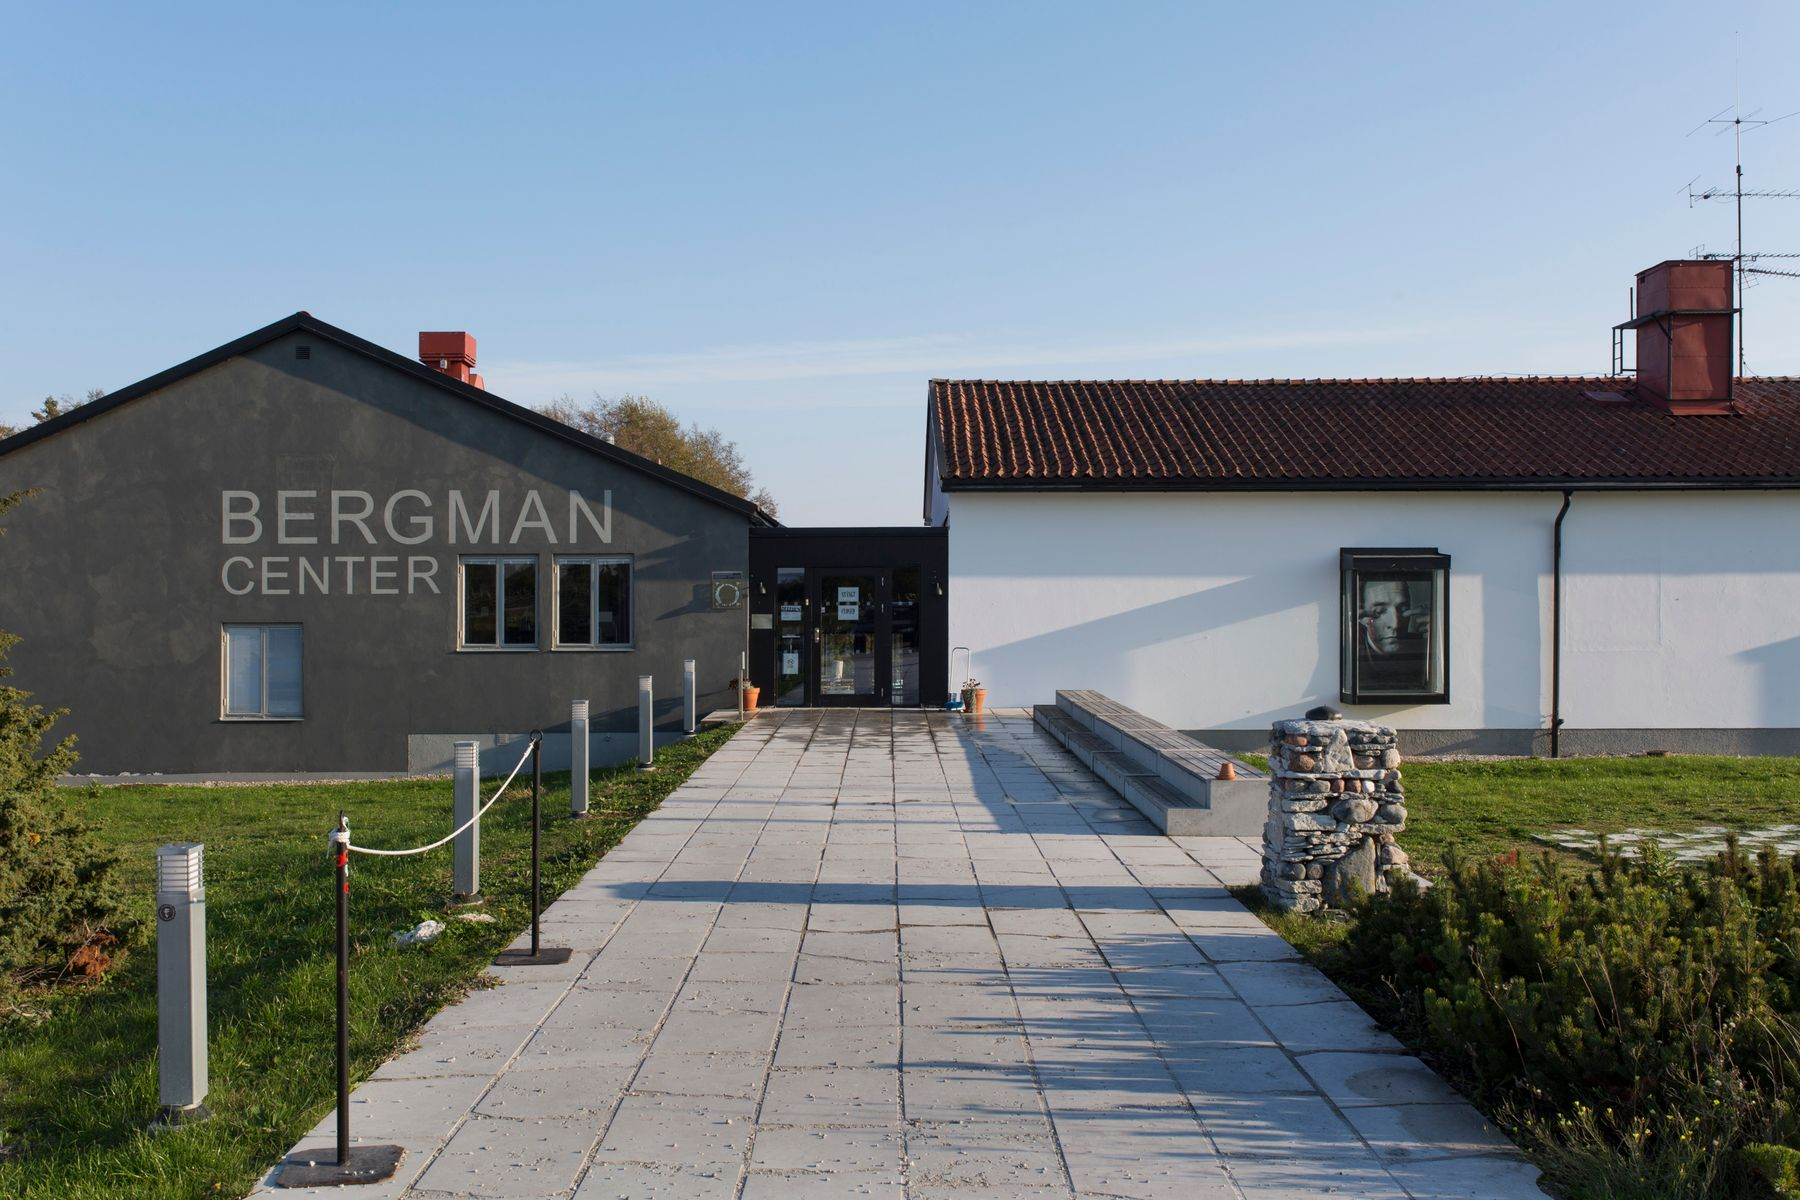 The Bergman Center in Fårö island